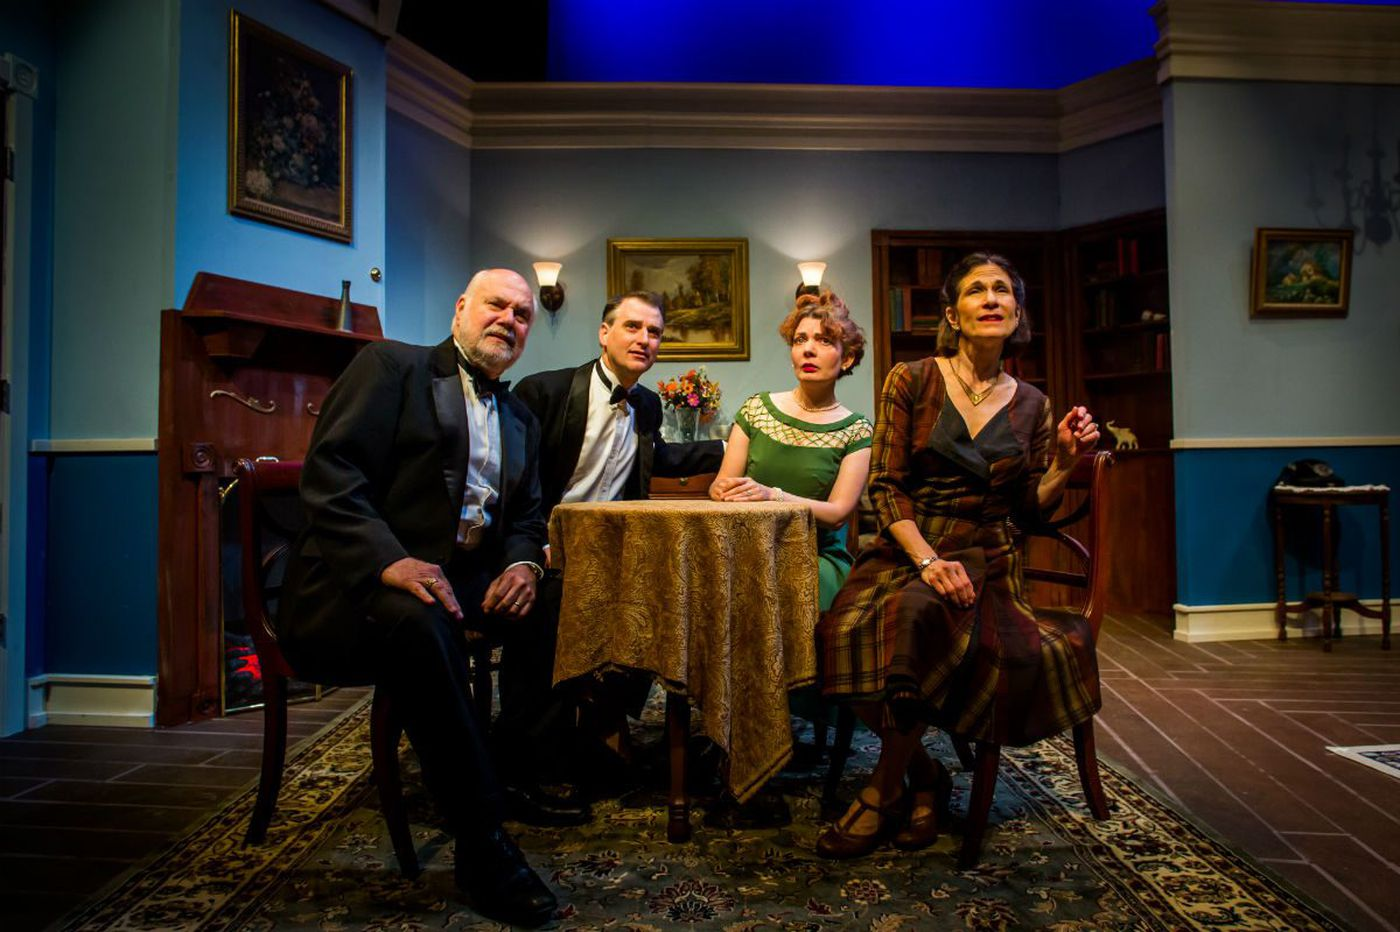 Hedgerow Theatre's 'Blithe Spirit' is blithe, spirited